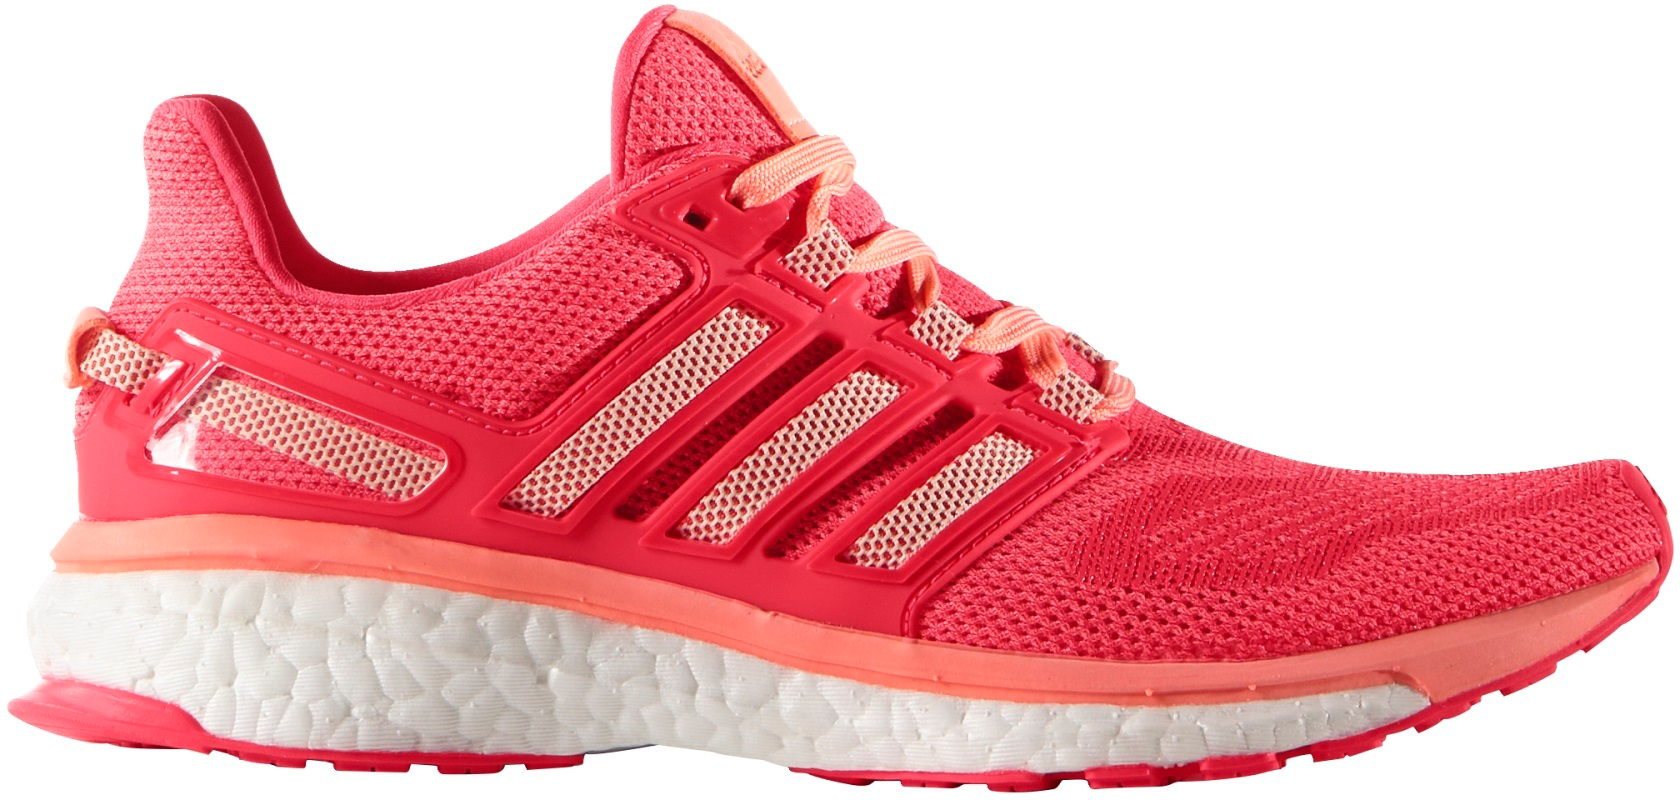 adidas energy boost techfit women's